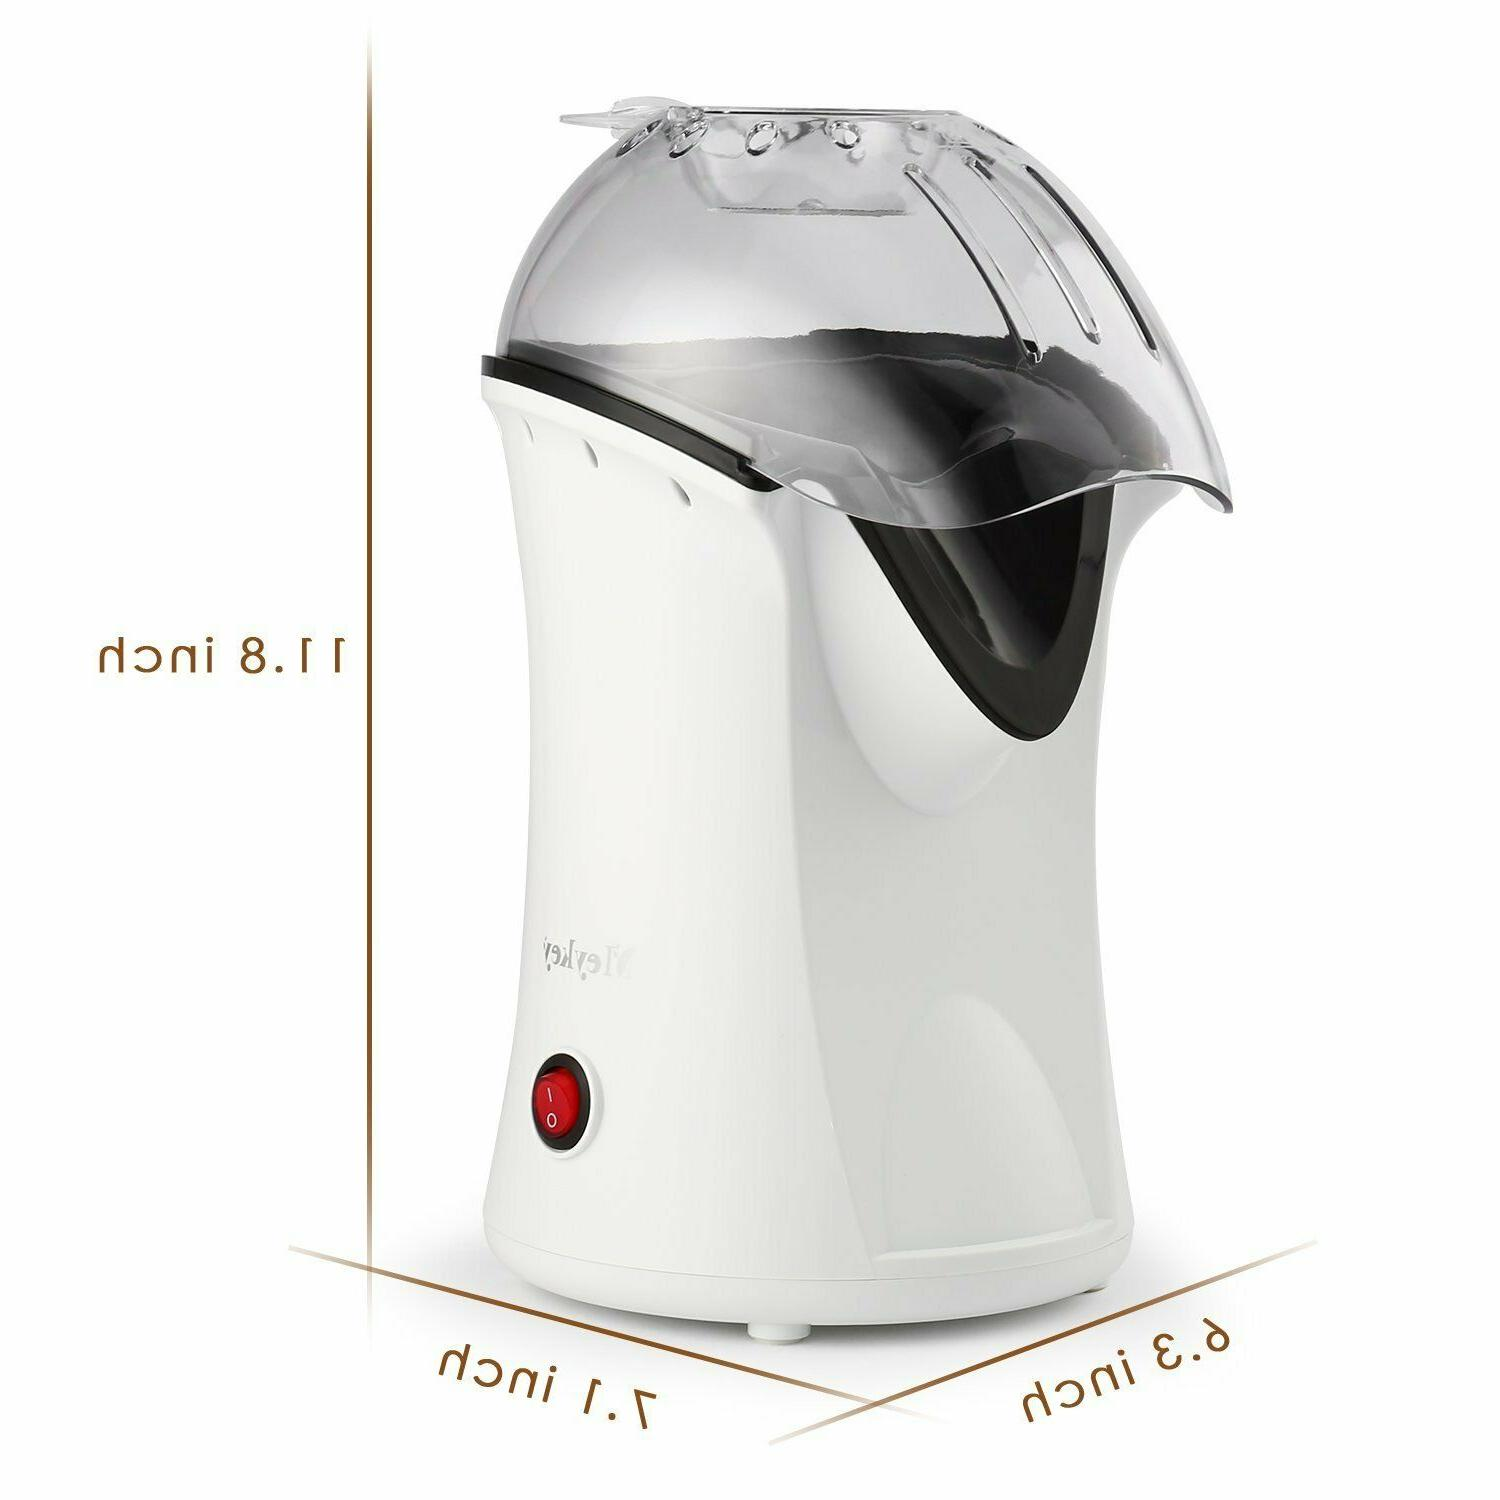 Popcorn Hot Air Popcorn Popper Healthy Machine Need